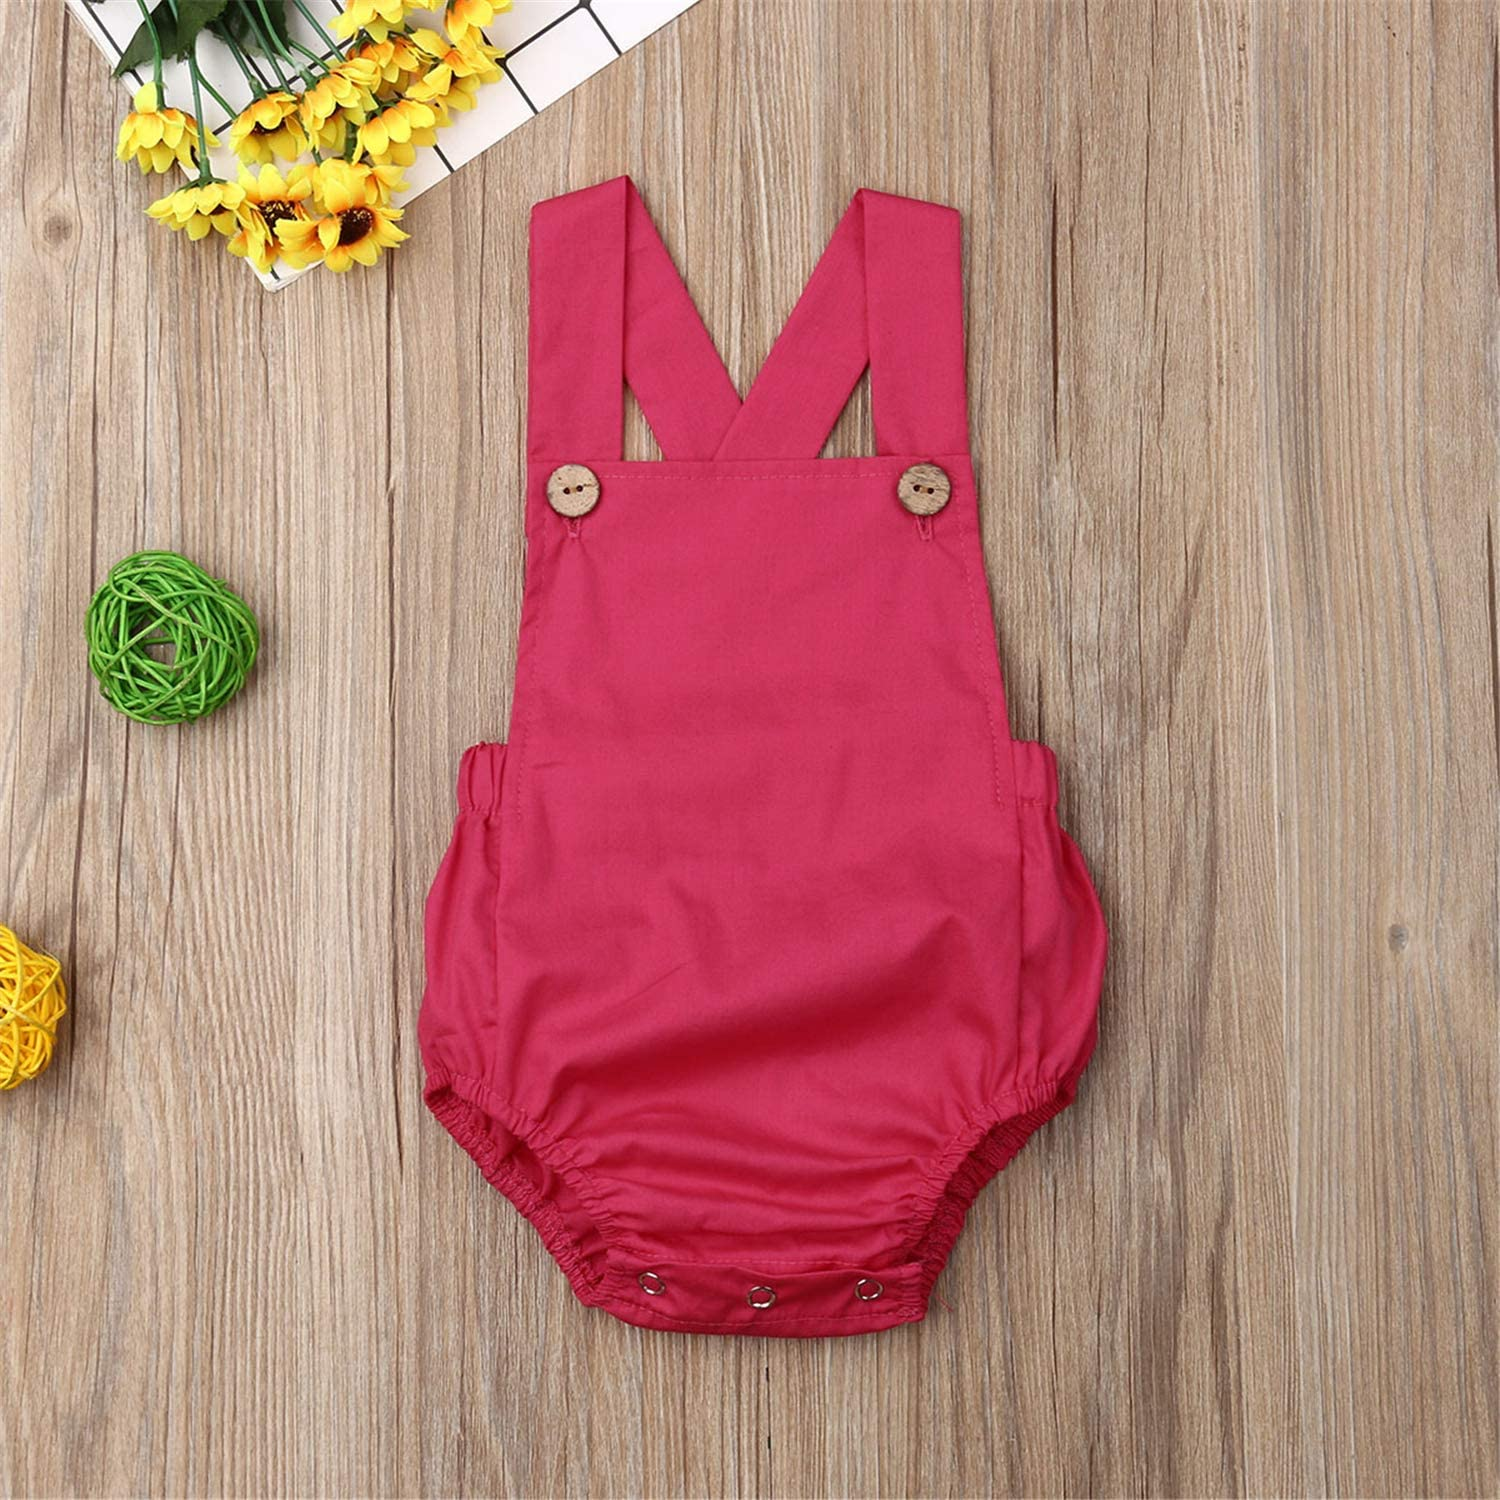 Newborn Infant Baby Girl Summer Outfit Sleeveless Cotton Romper Bodysuit Jumpsuit Clothes